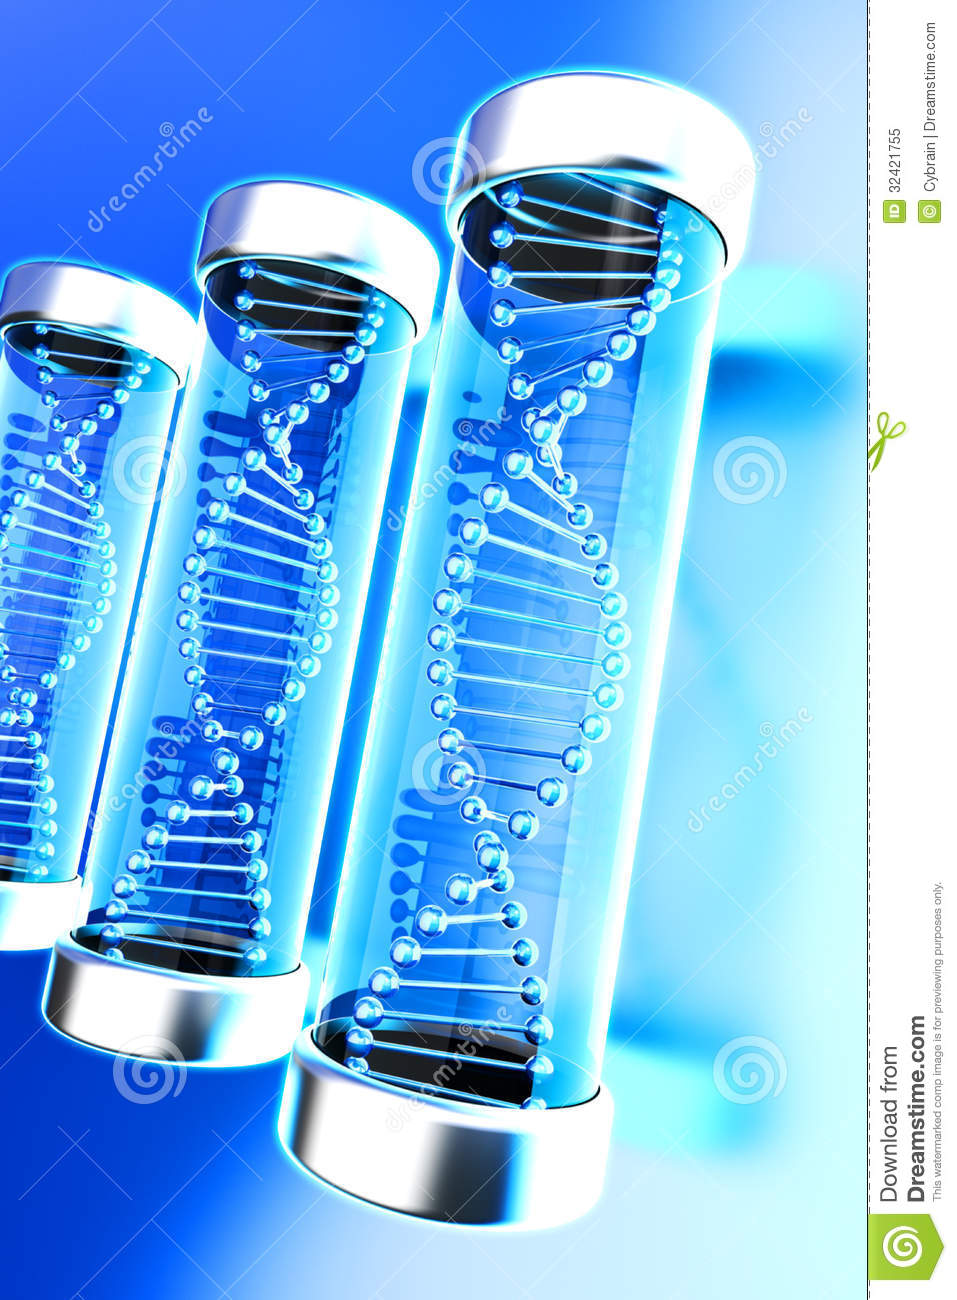 Medical Research Concept Royalty Free Stock Photo  Image 32421755